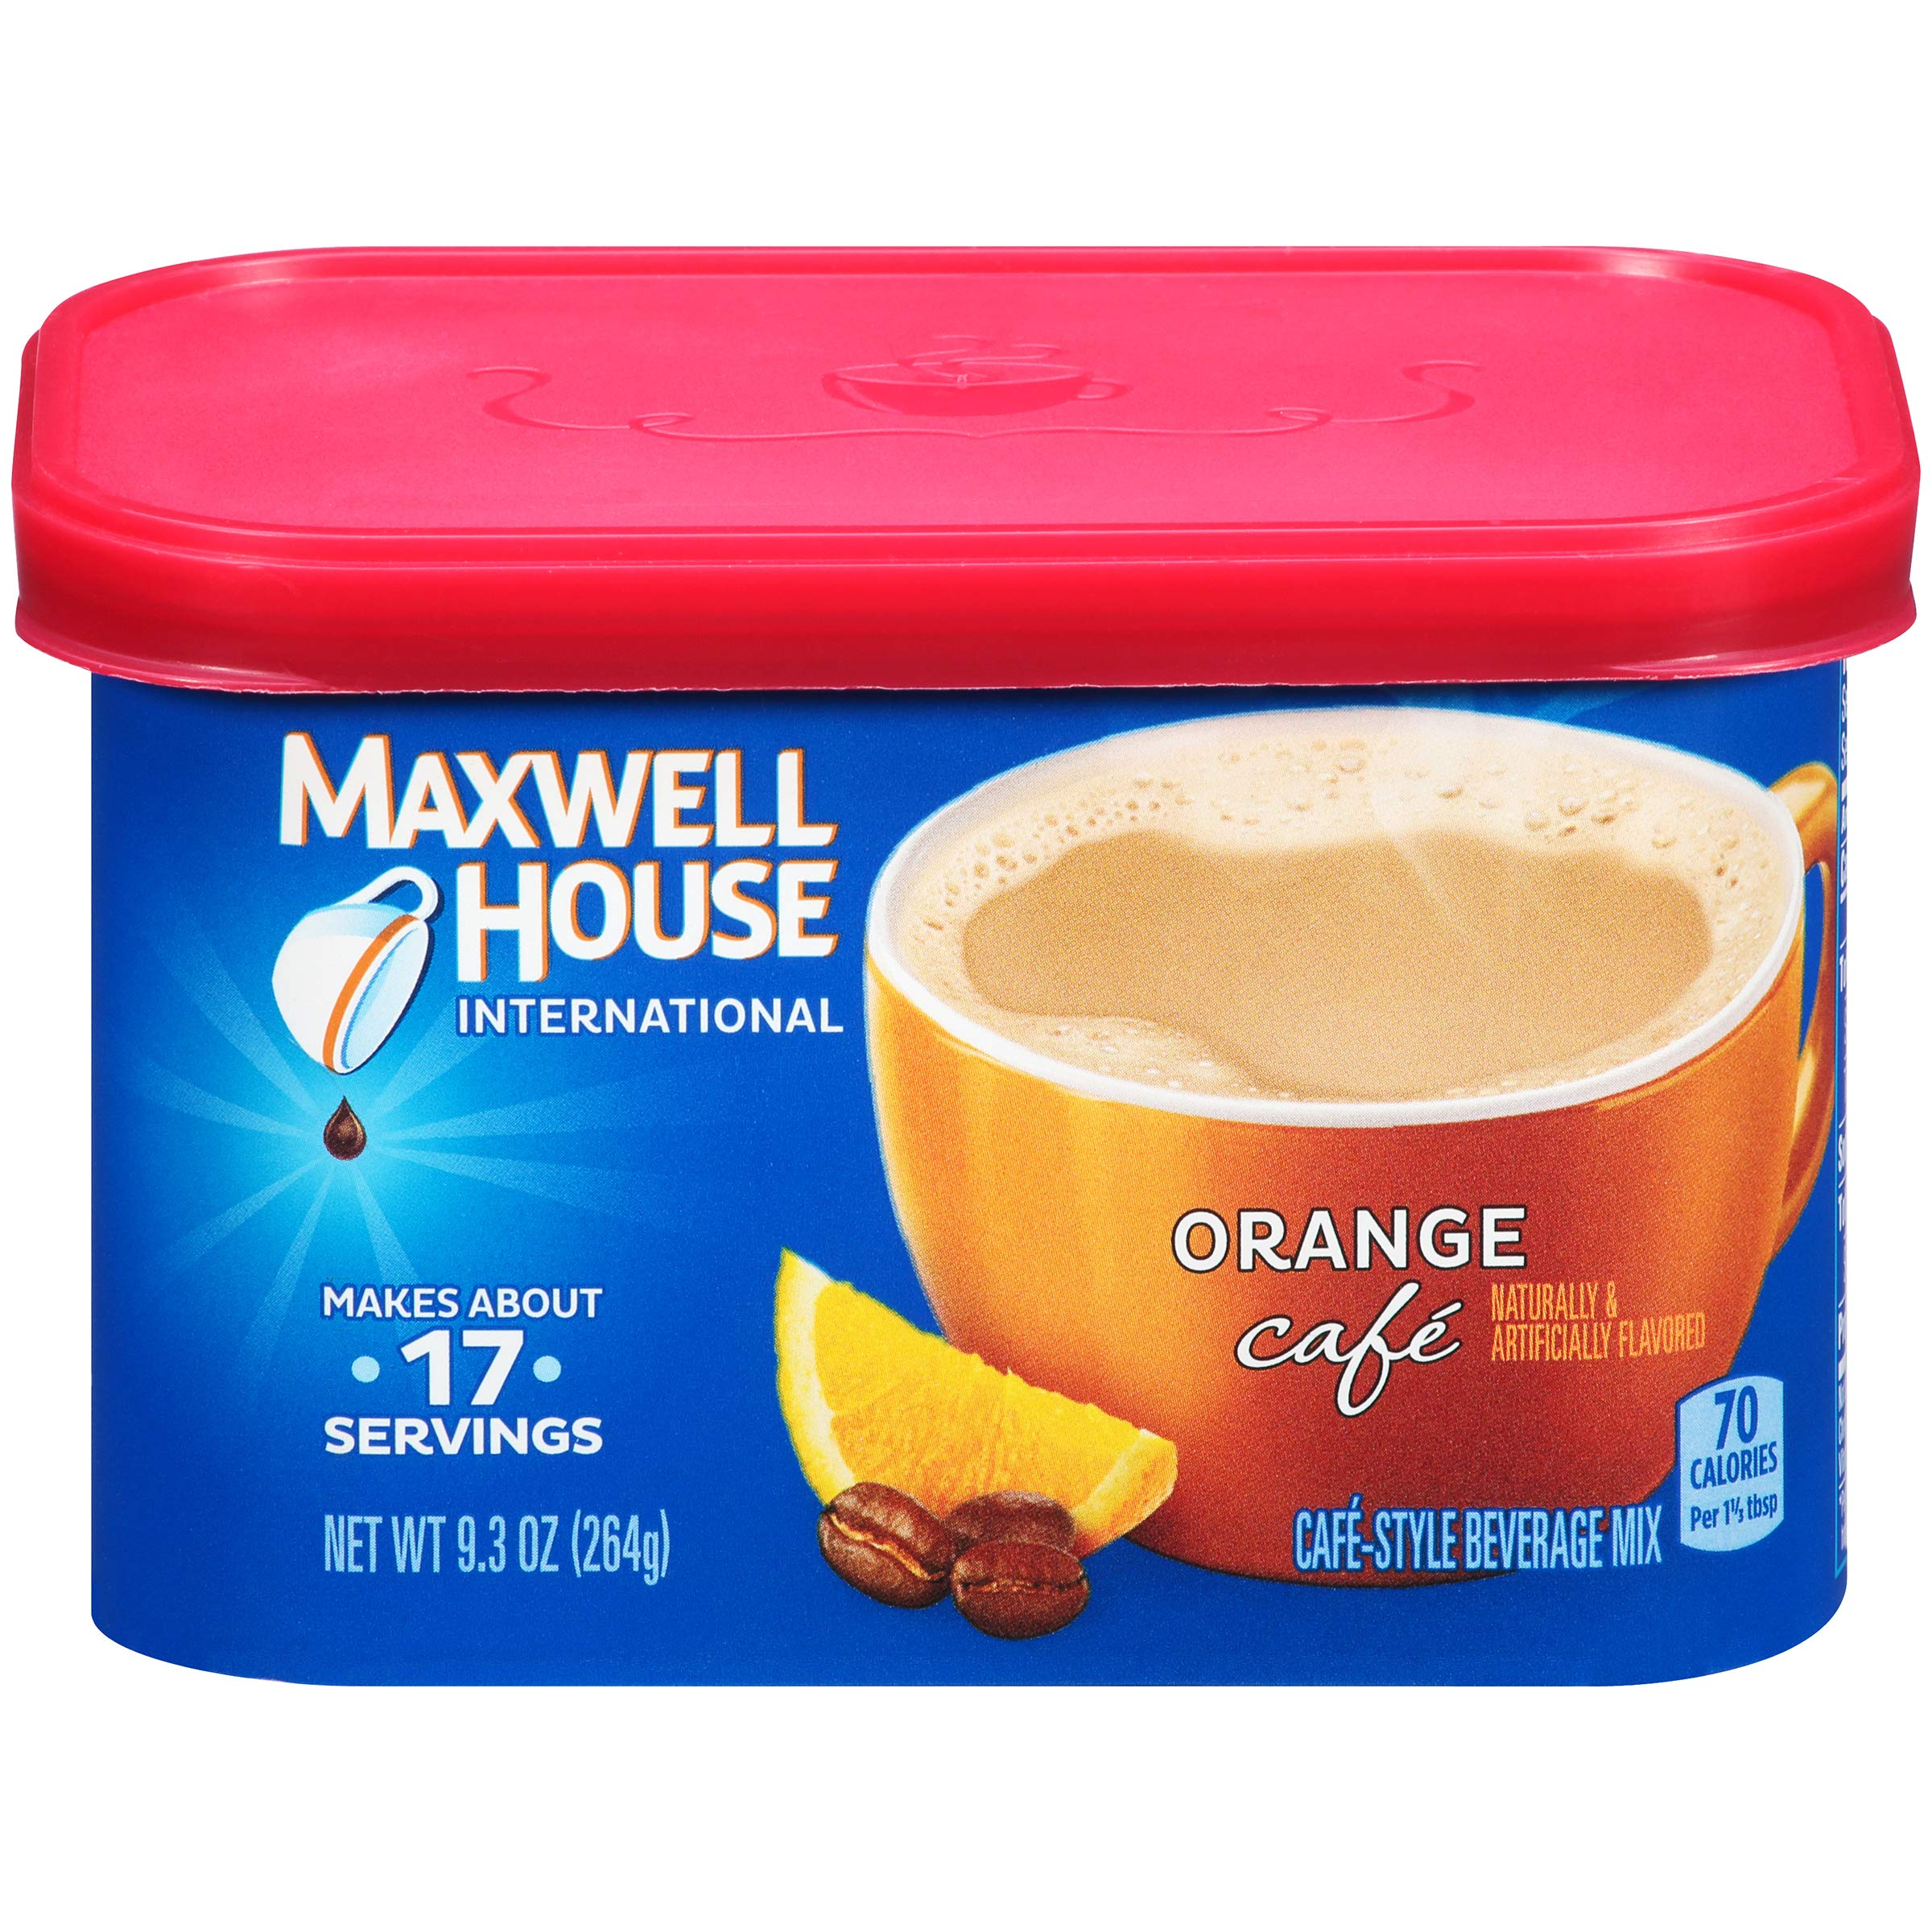 Maxwell House Orange Instant Coffee International Cafe (9.3oz Canisters, Pack of 4) by MAXWELL HOUSE